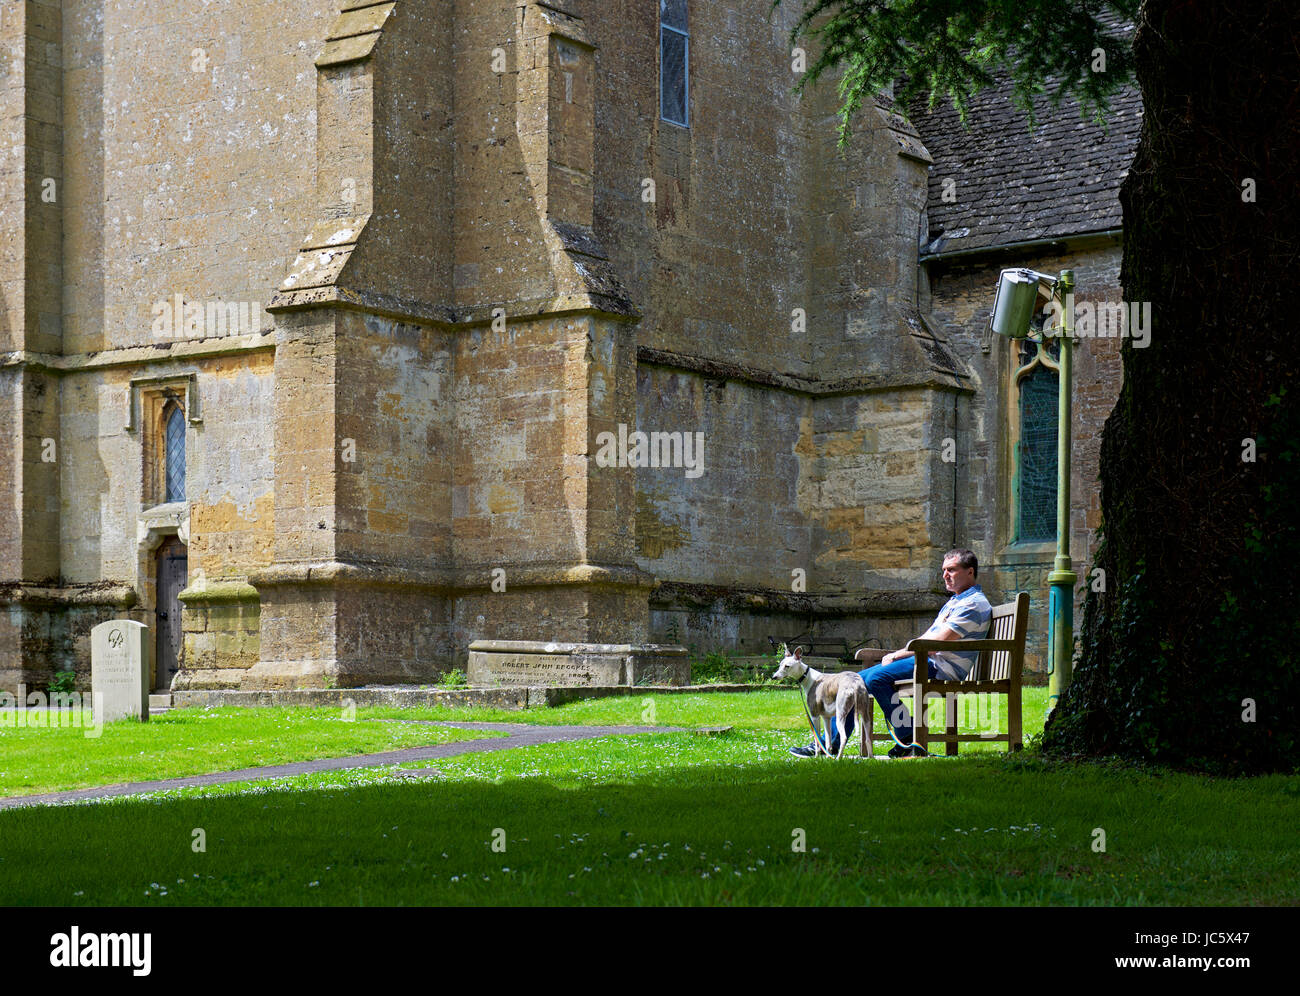 Man and dog and St Edward's's Church, Stow on the Wold, Gloucestershire, England UK Stock Photo